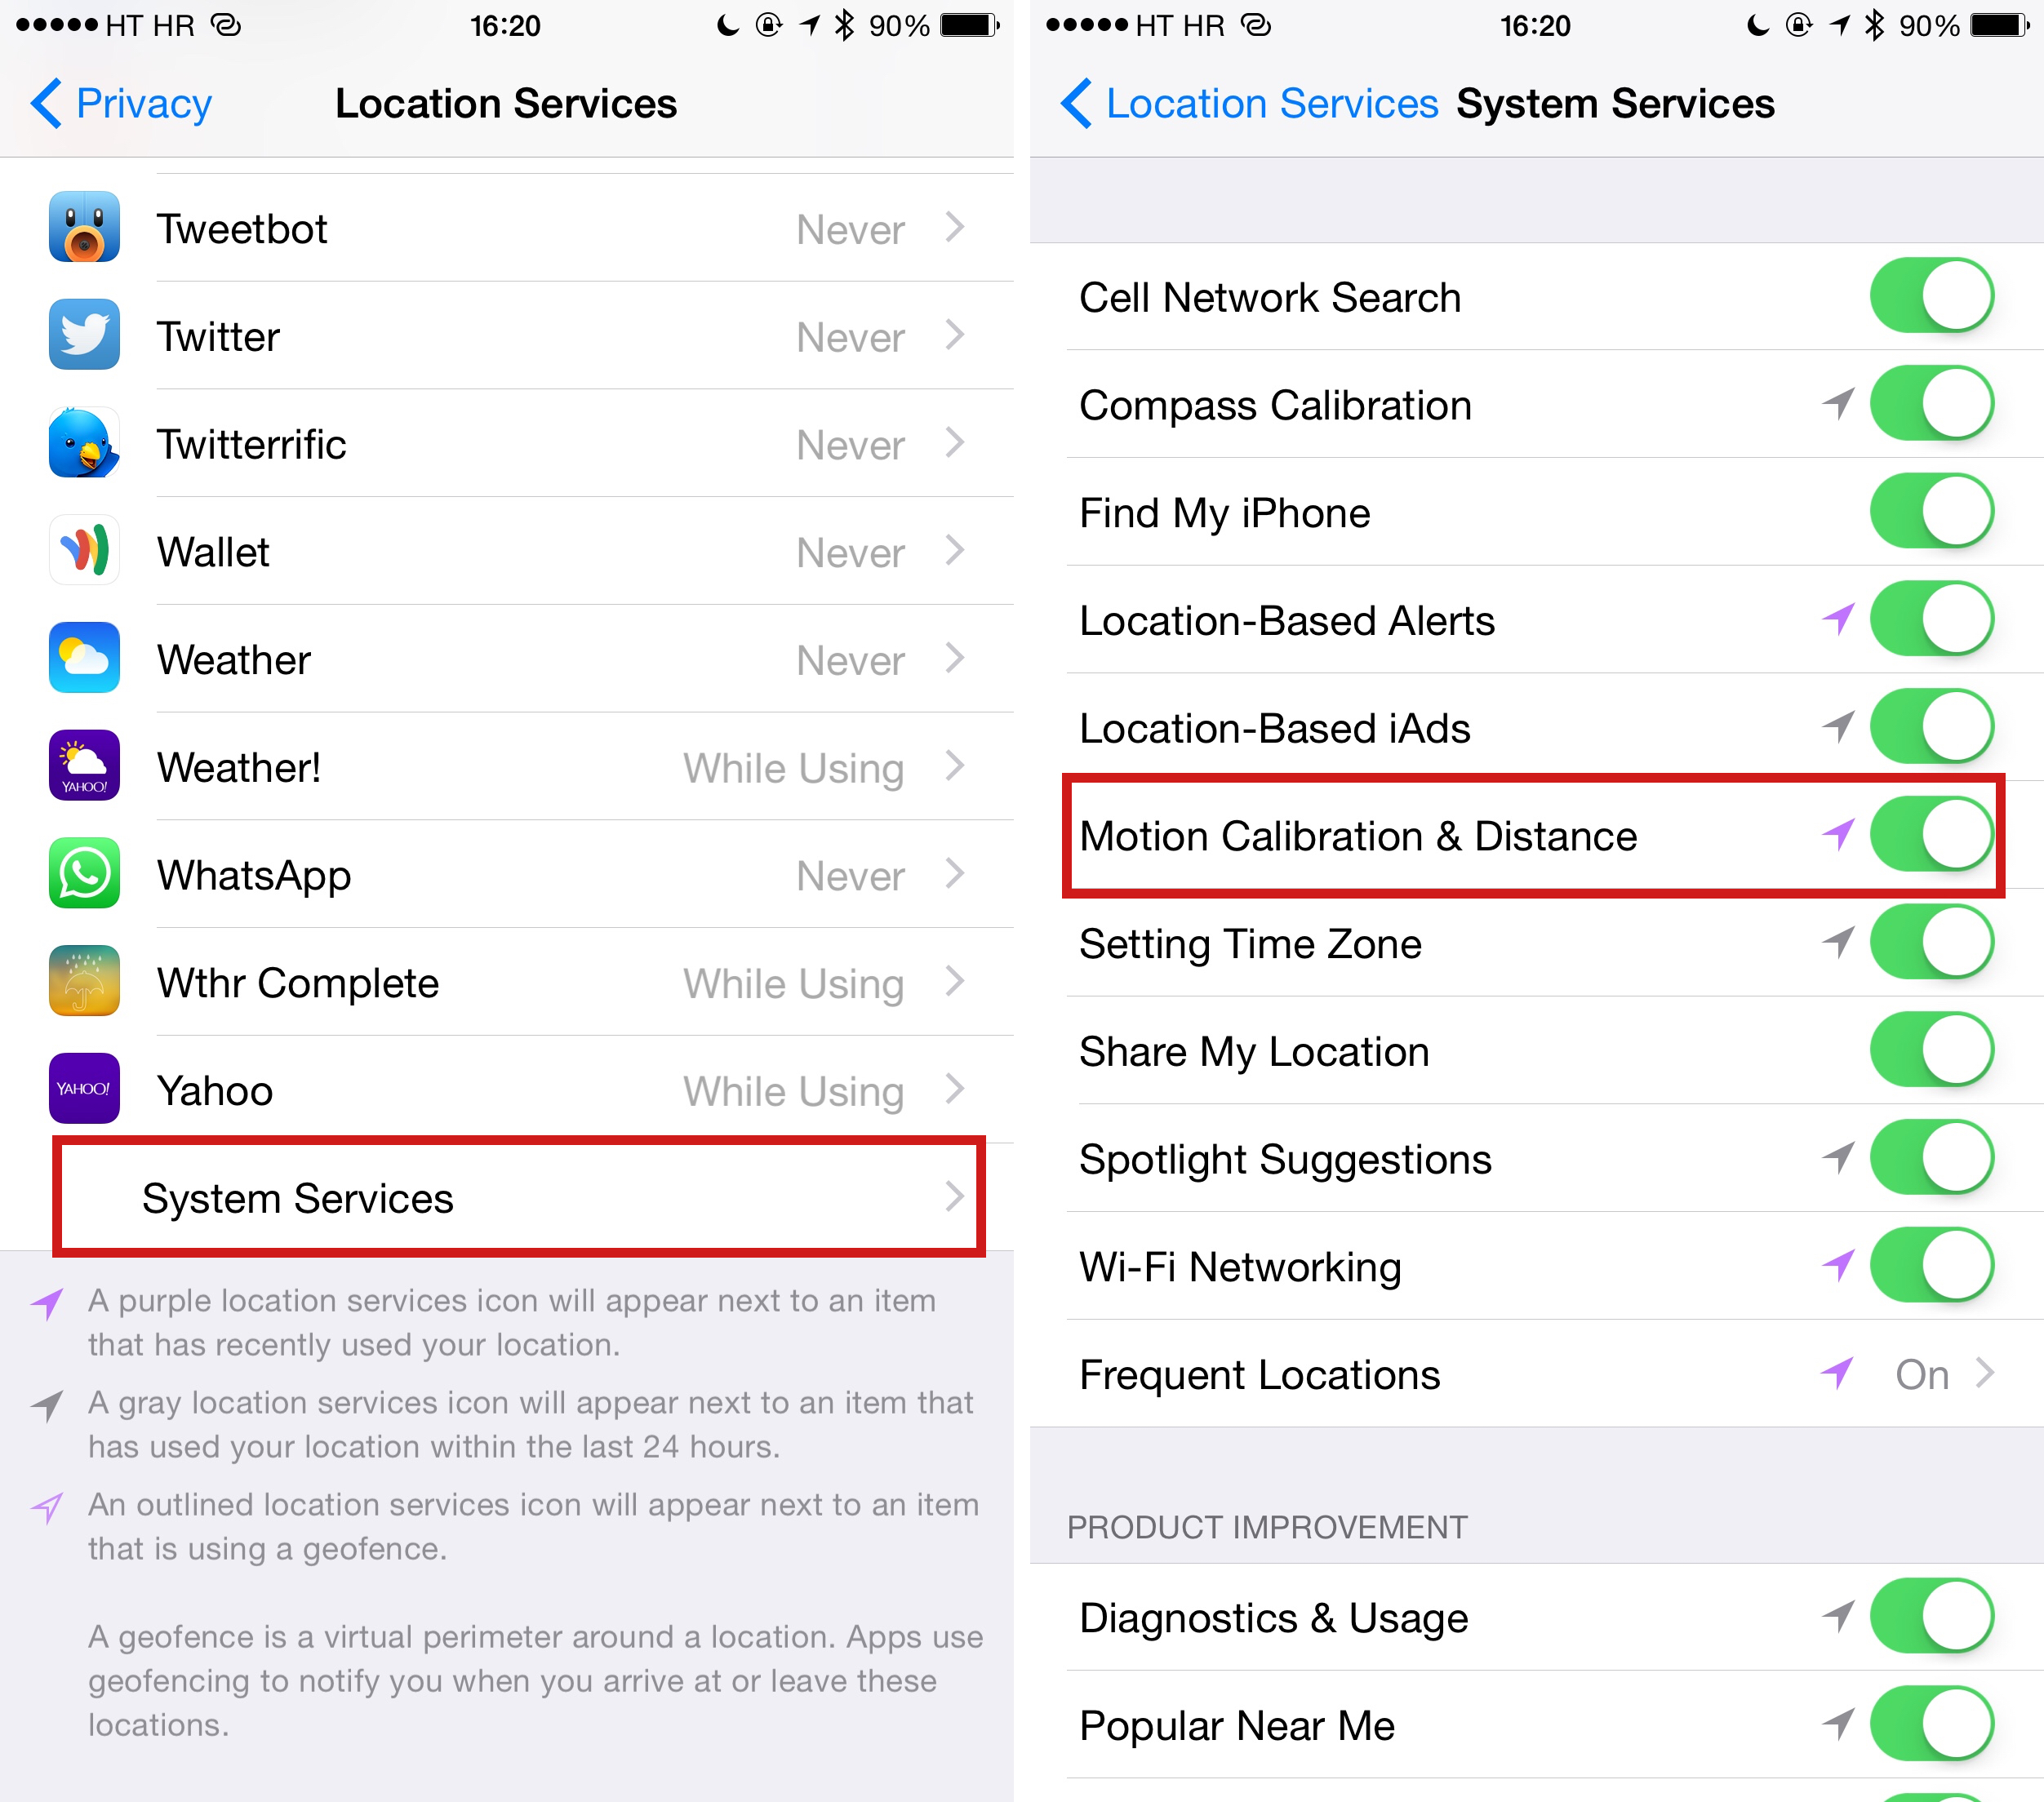 iOS 8 Settings Motion Calibration and Distance enabled